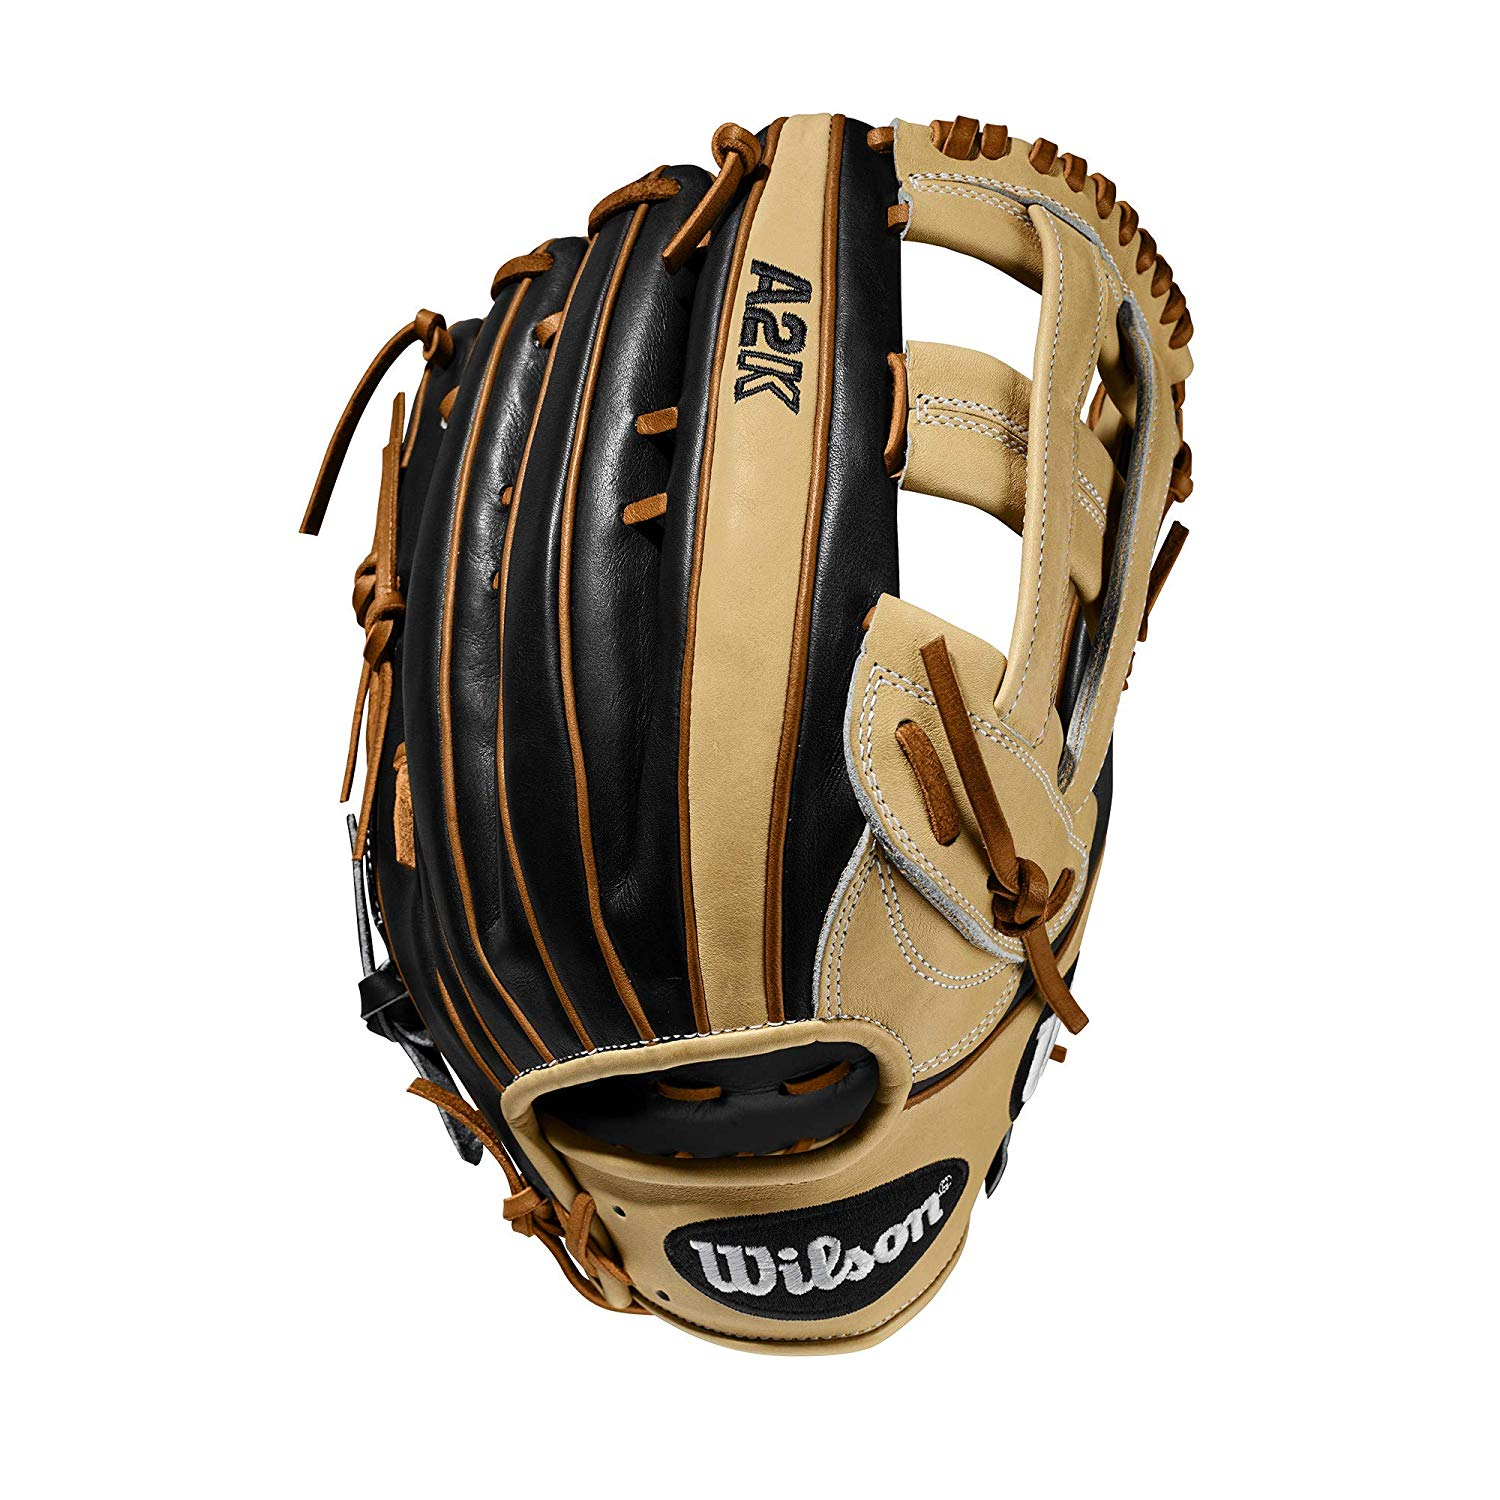 wilson-a2k-rb20-1799-baseball-glove-12-75-right-hand-throw WTA2KRB201799-RightHandThrow Wilson 887768815264 Dual Post Web Design and three times more shaping to help